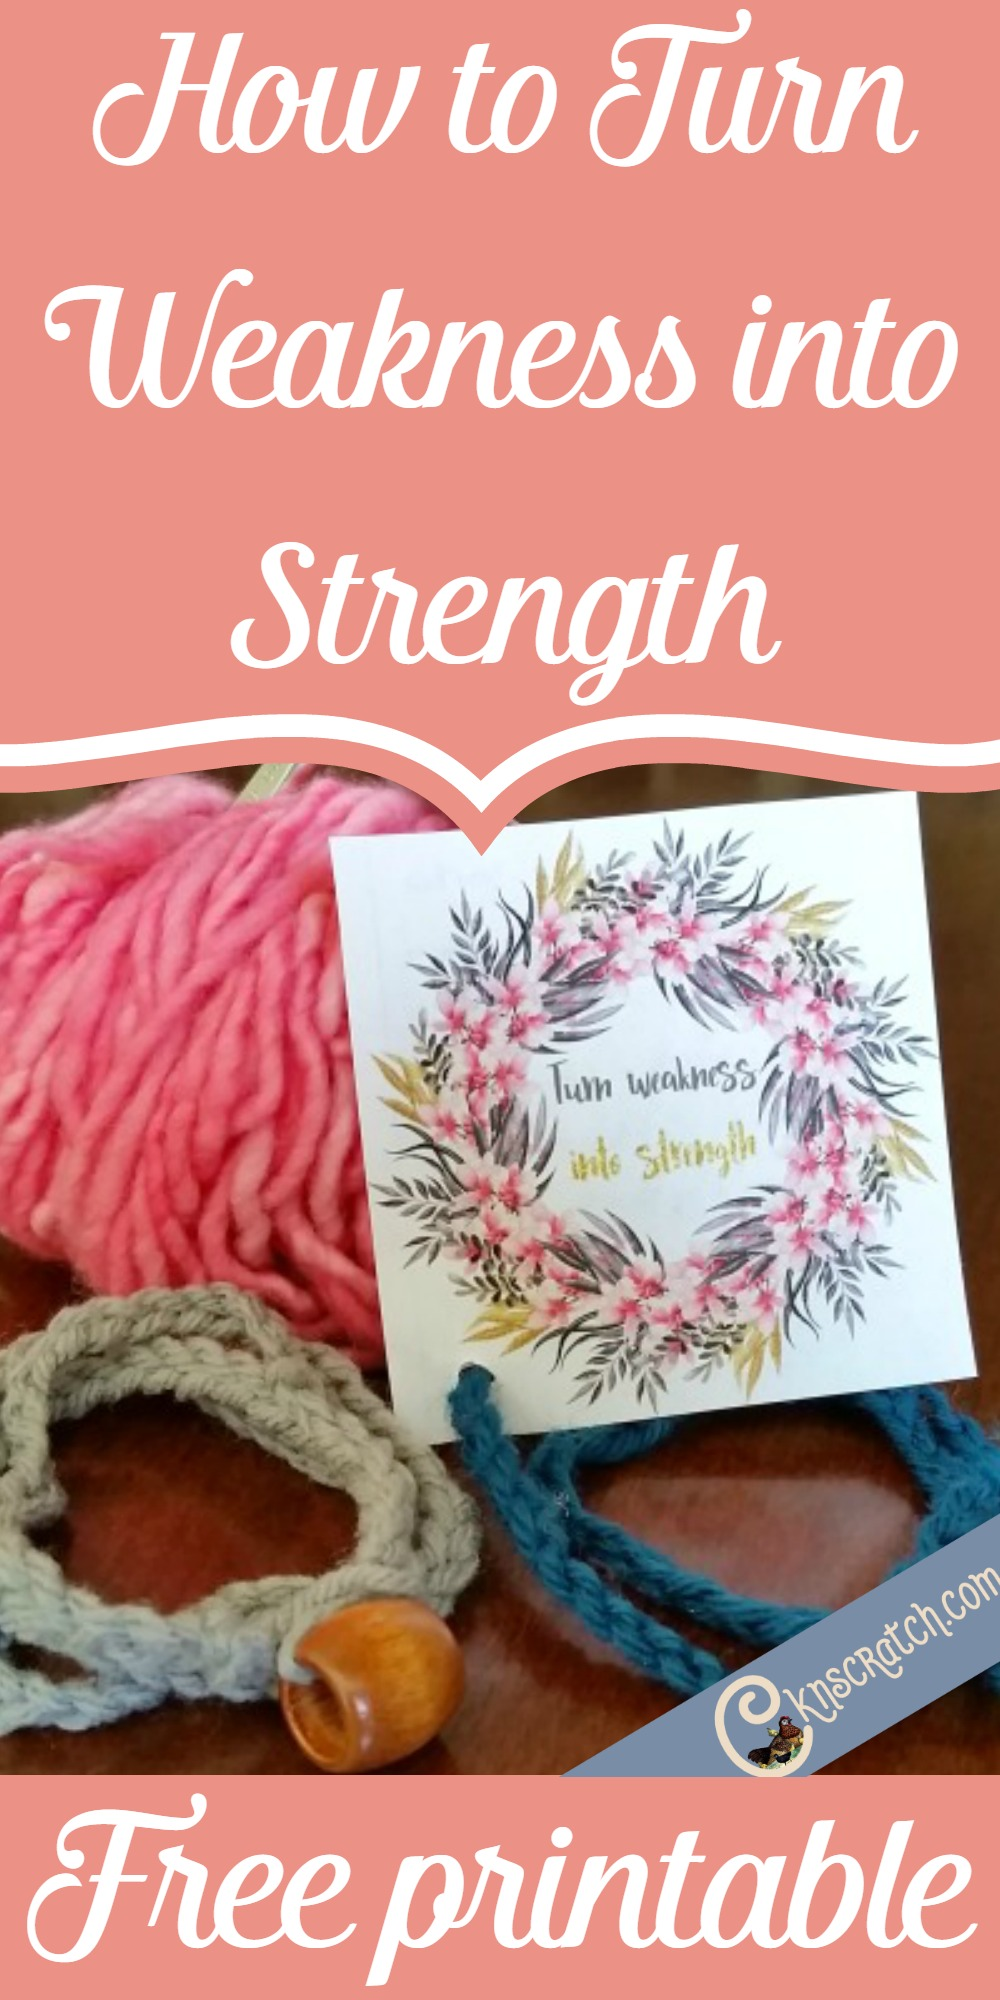 Fun object lesson to teach about turning weaknesses into strength- great for scripture study or LDS activity days